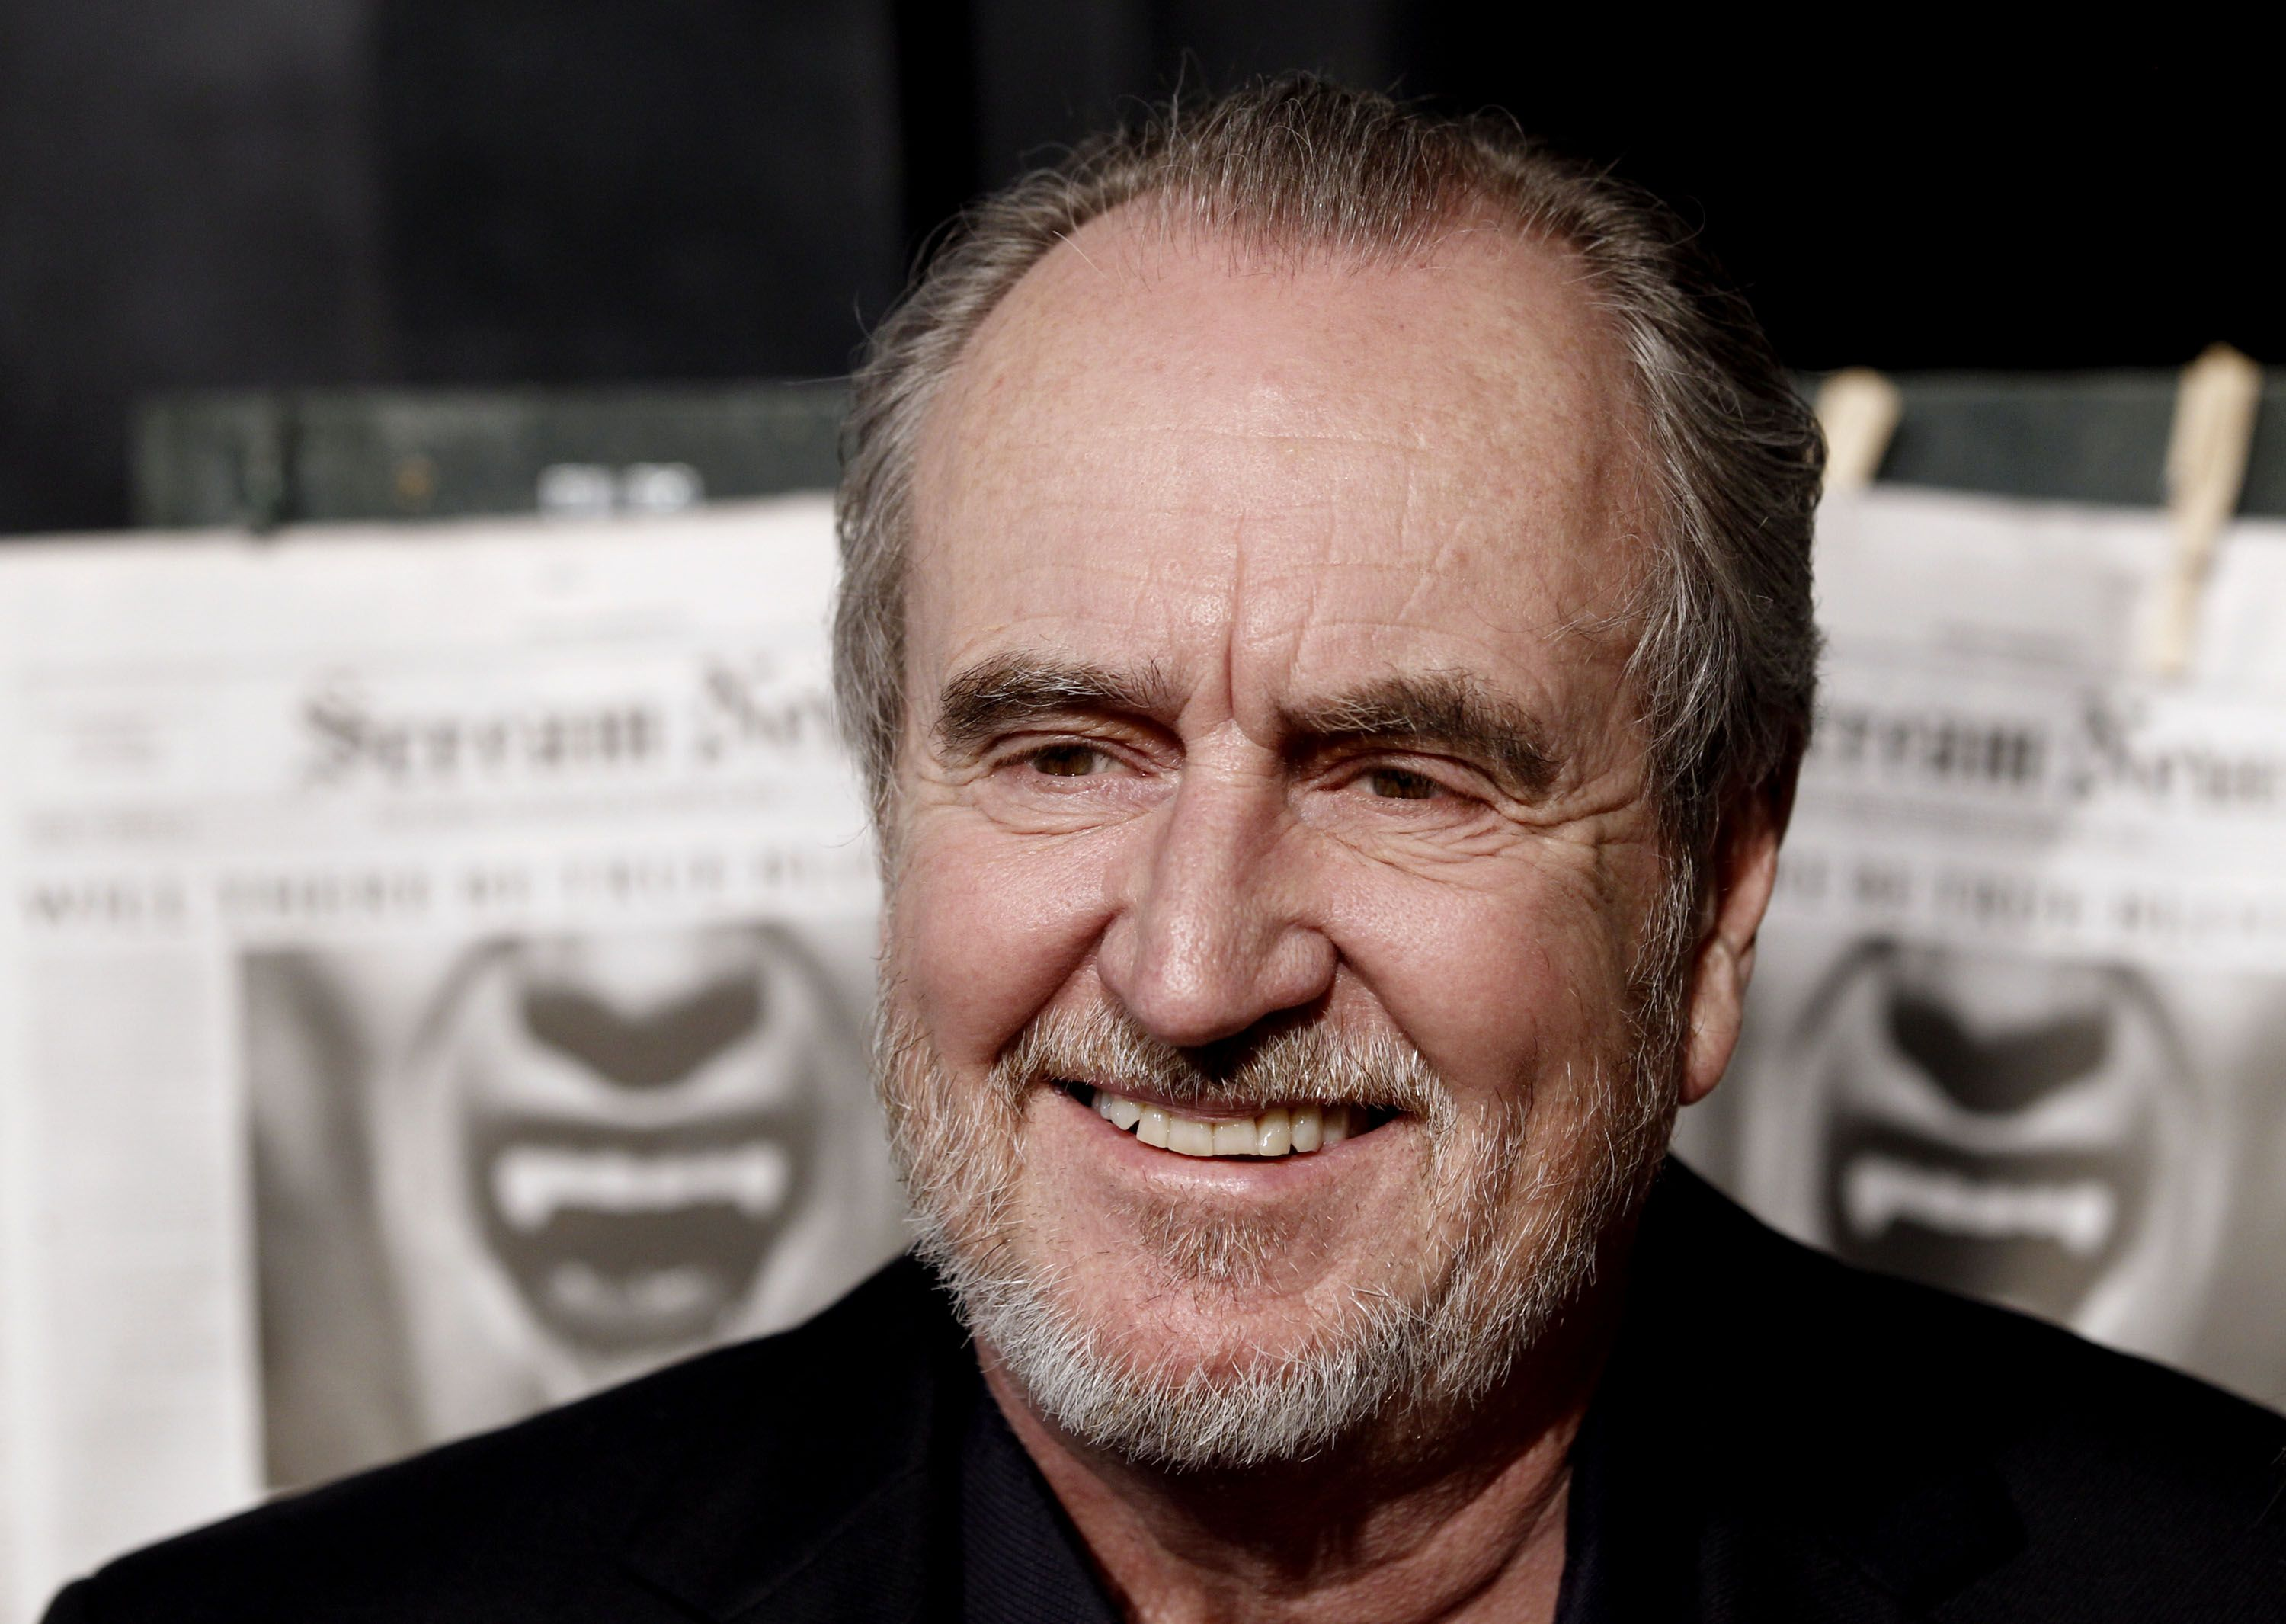 wes craven net worthwes craven interview, wes craven art, wes craven died, wes craven shocker, wes craven movies, wes craven height, wes craven meryl streep, wes craven wiki, wes craven, wes craven's new nightmare, wes craven dead, wes craven death, wes craven imdb, wes craven net worth, wes craven dies, wes craven quotes, wes craven films, wes craven they, wes craven twitter, wes craven filmography